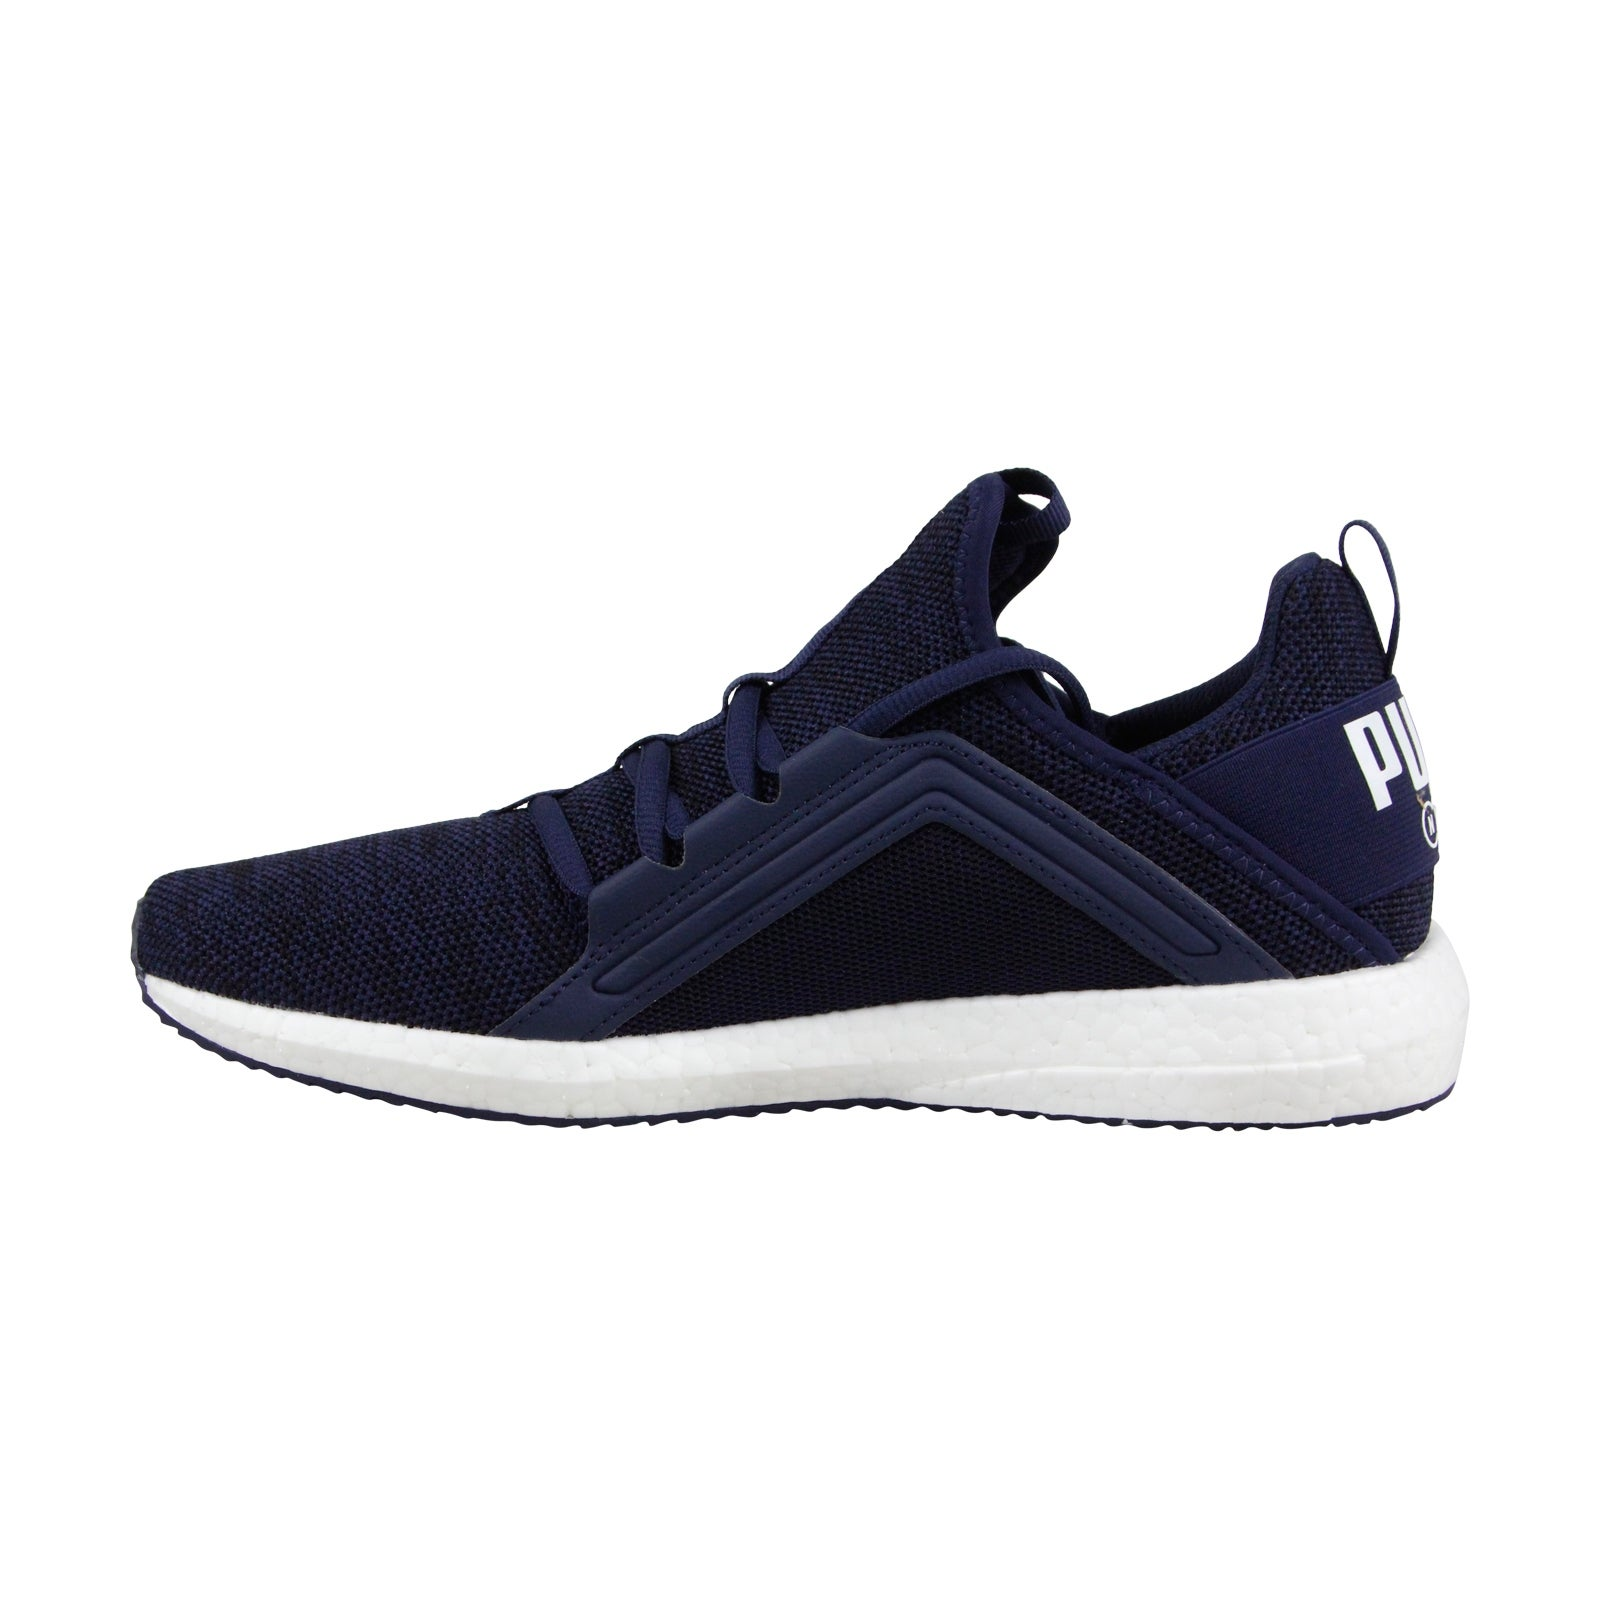 3ae22373a50 Shop Puma Mega Nrgy Knit Mens Blue Mesh Athletic Lace Up Training Shoes -  Free Shipping On Orders Over  45 - Overstock - 23524549